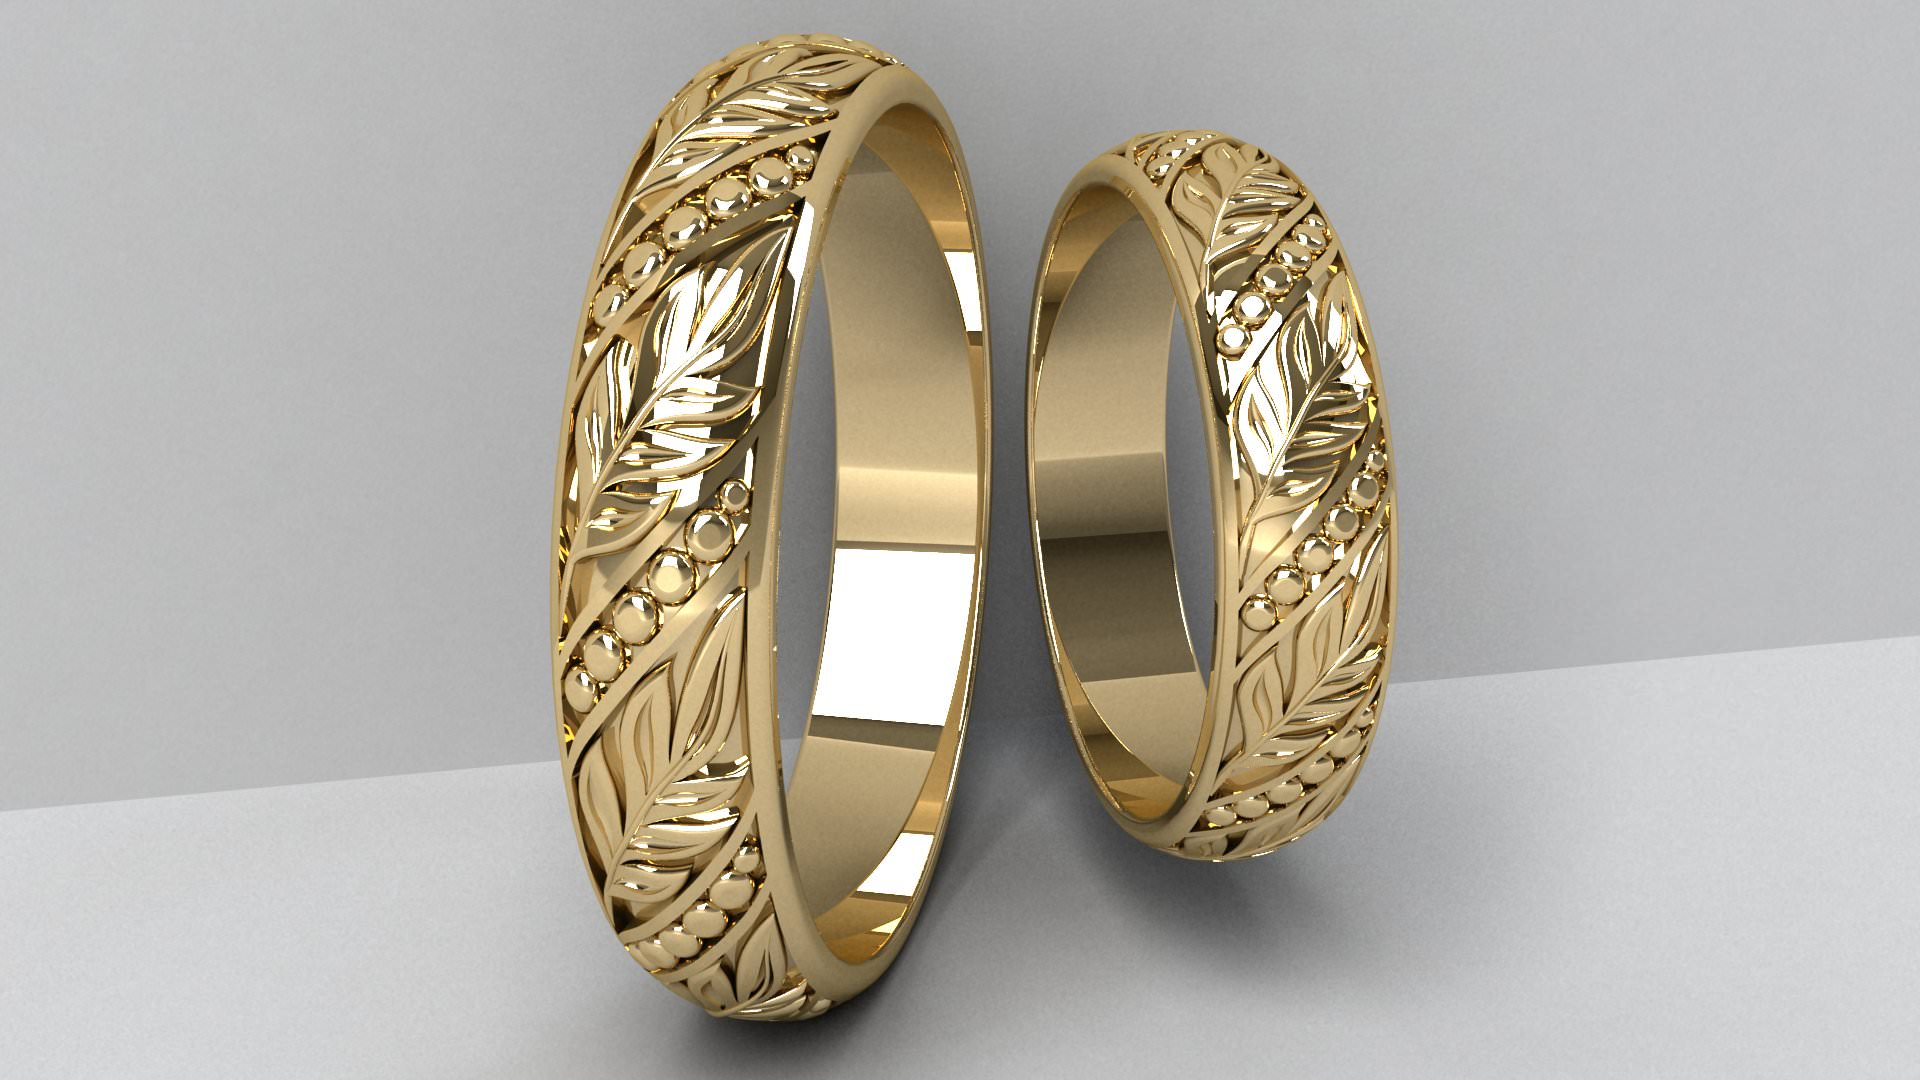 Wedding Rings 5 3D Model Printable stl CGTradercom